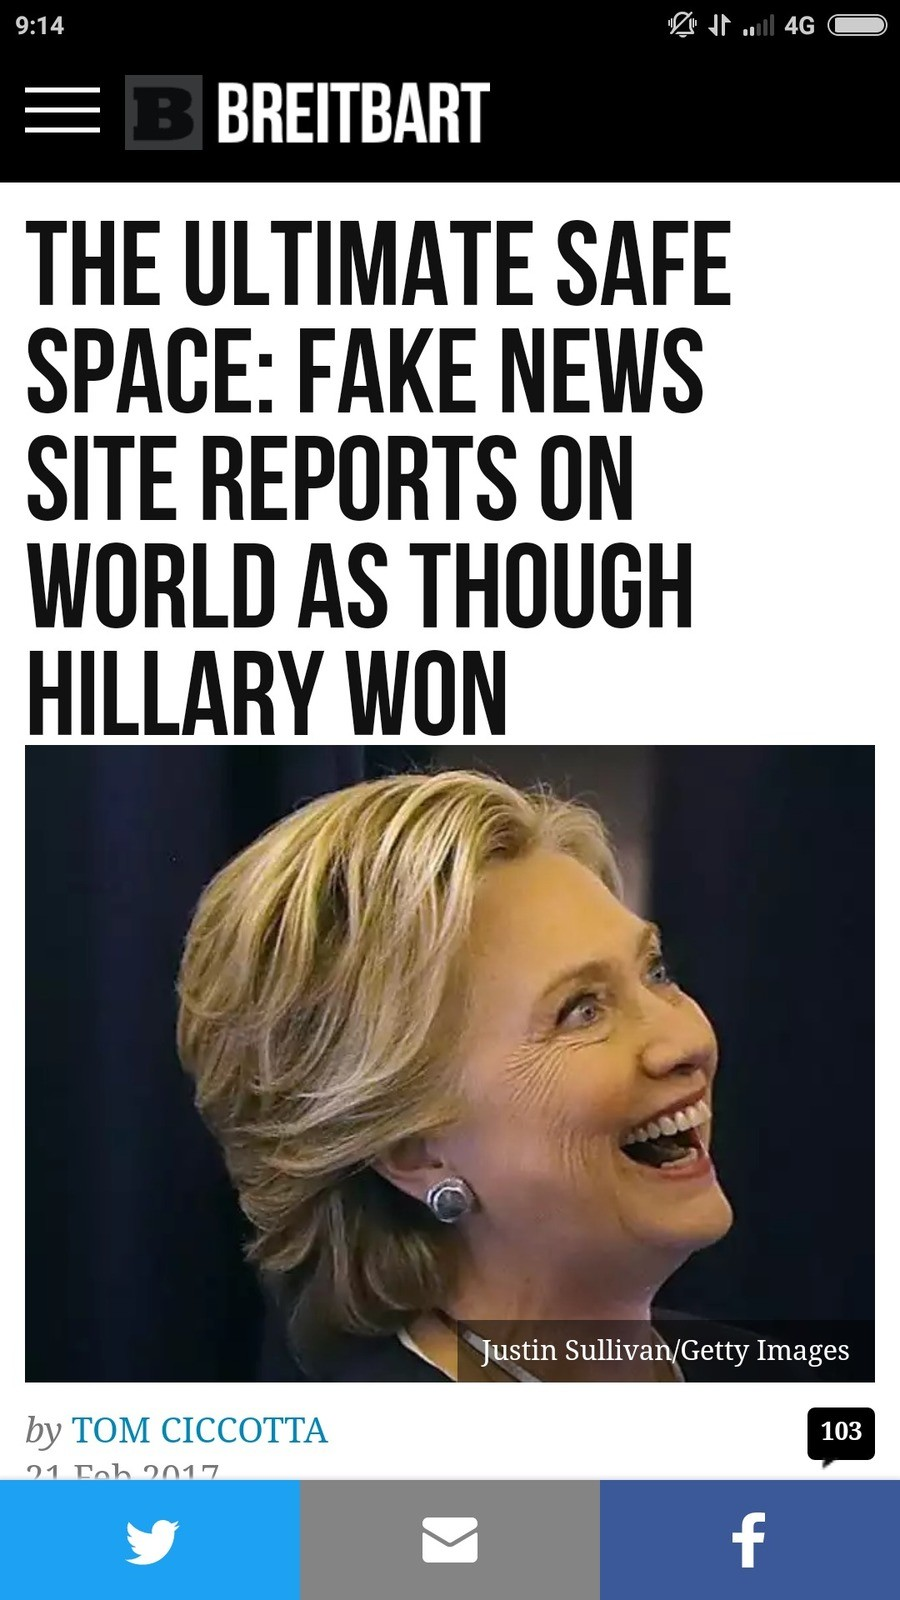 The ultimate safe space. www.breitbart.com/tech/2017/02/21/the-ultimate-safe-space-fake-news-site-reports-on-world-as-though-hillary-won/?utmsource=facebook&amp